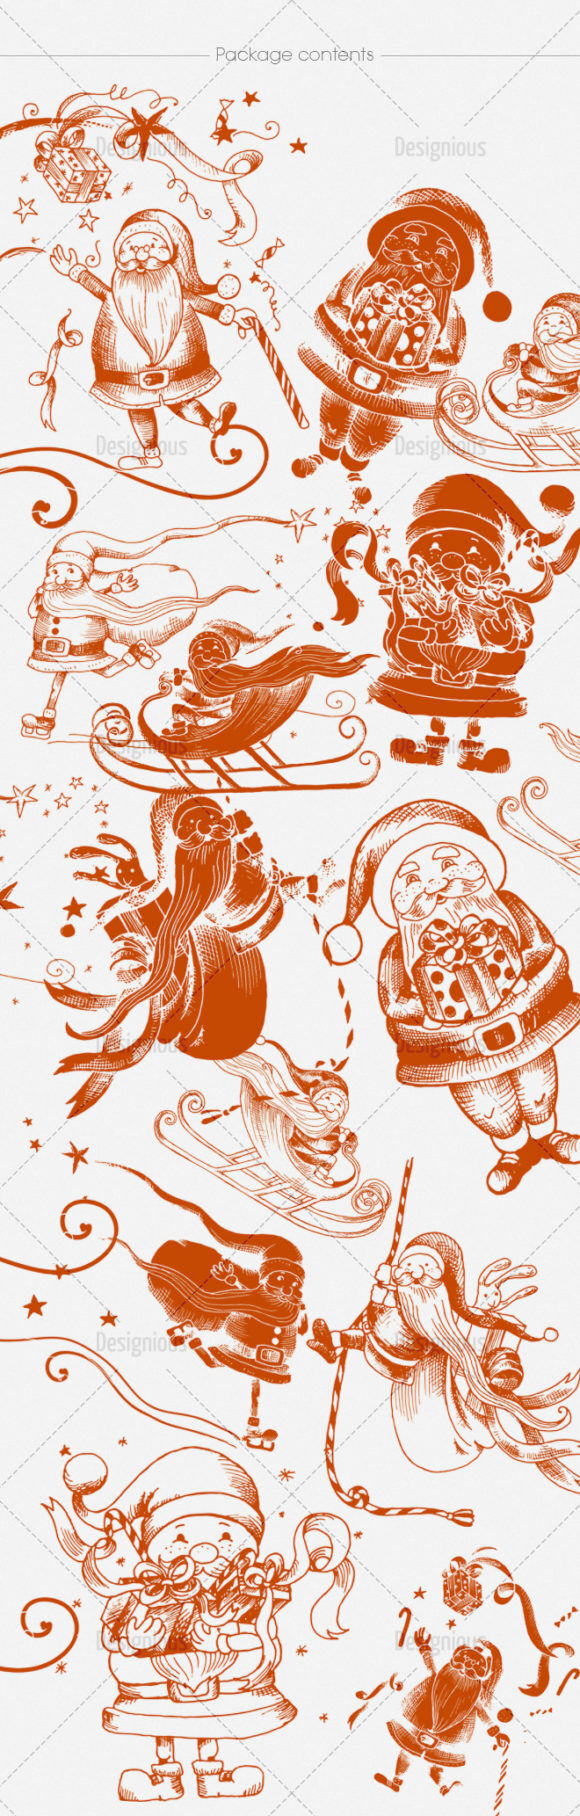 Santa Claus Brushes Pack 12 Holiday brushes [tag]